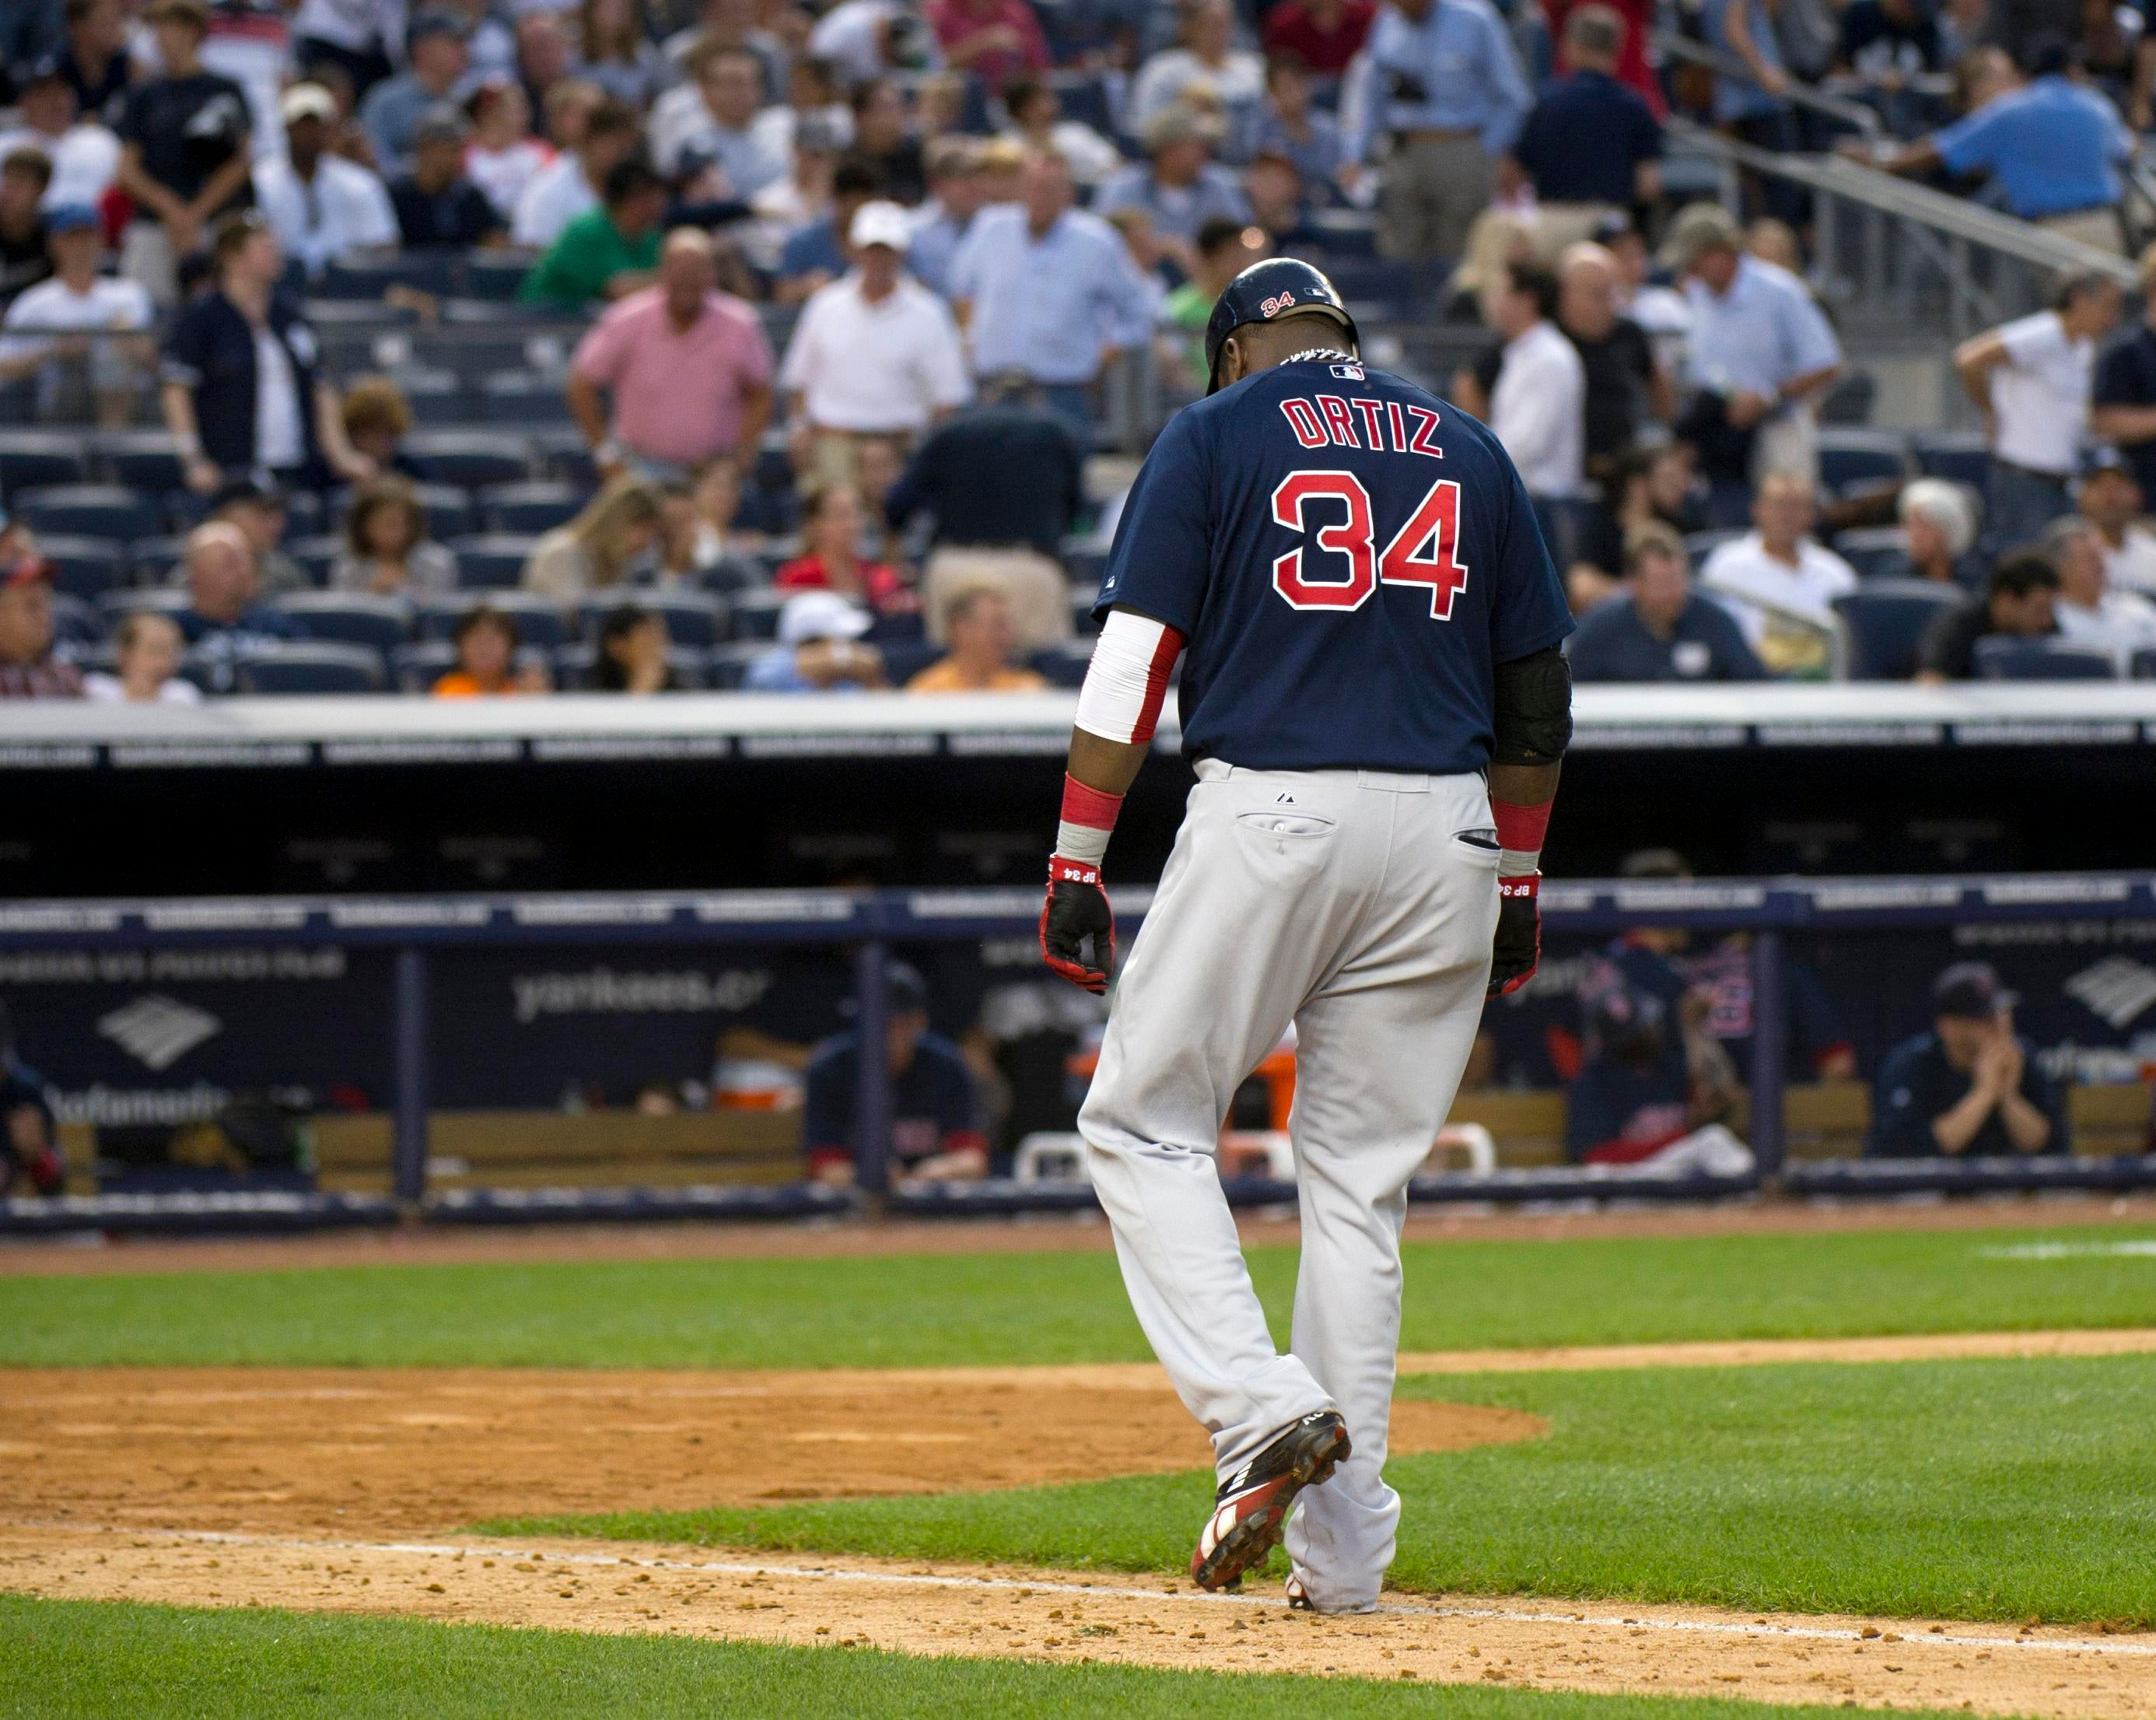 Boston Red Sox batter David Ortiz walks back to the dugout after grounding out against the New York Yankees.